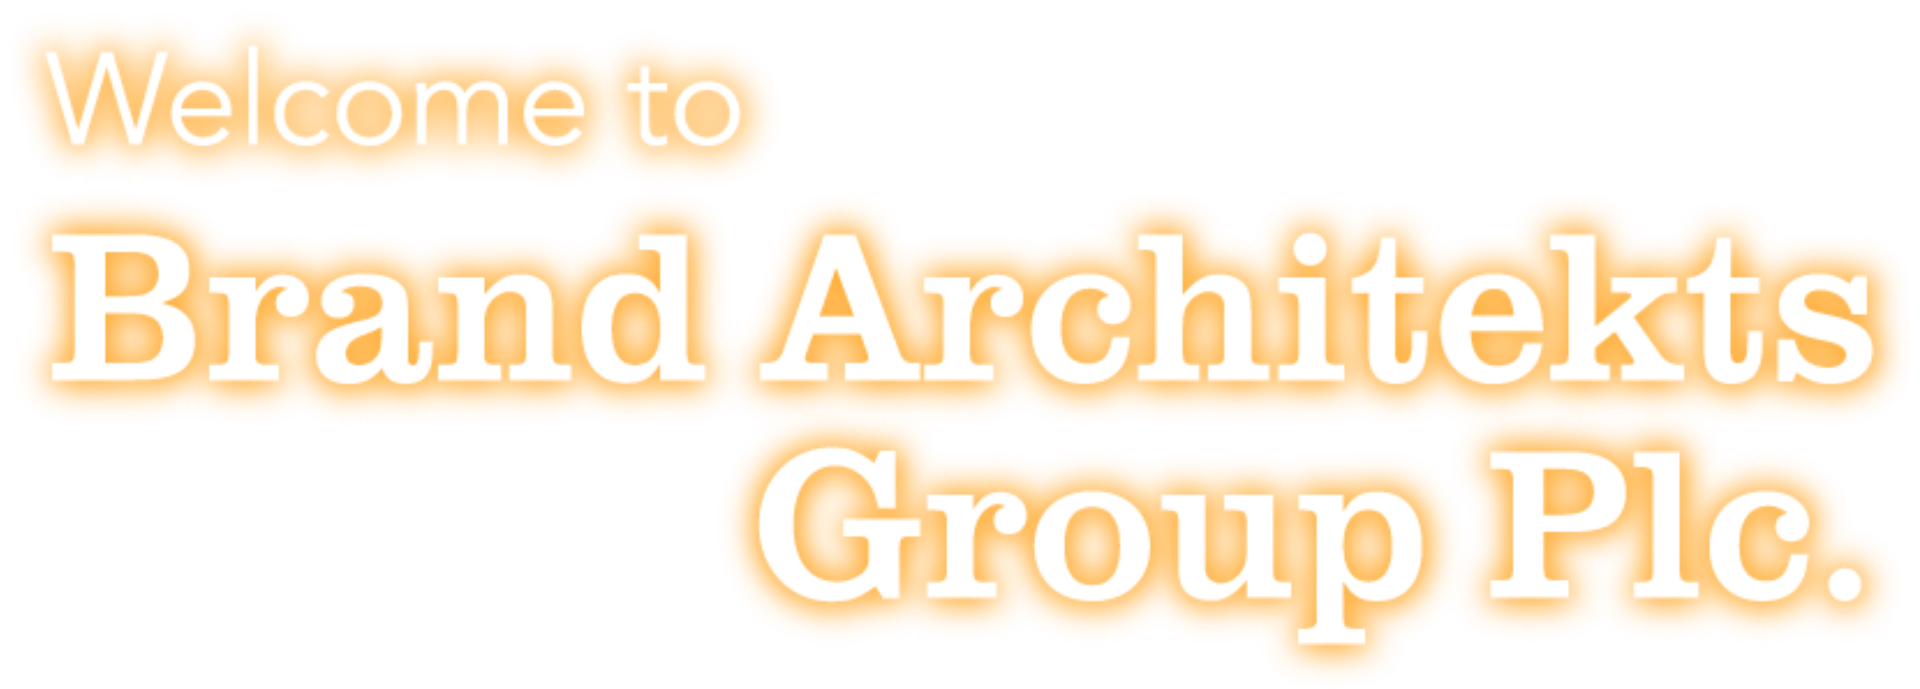 Brand architekts welcome orange